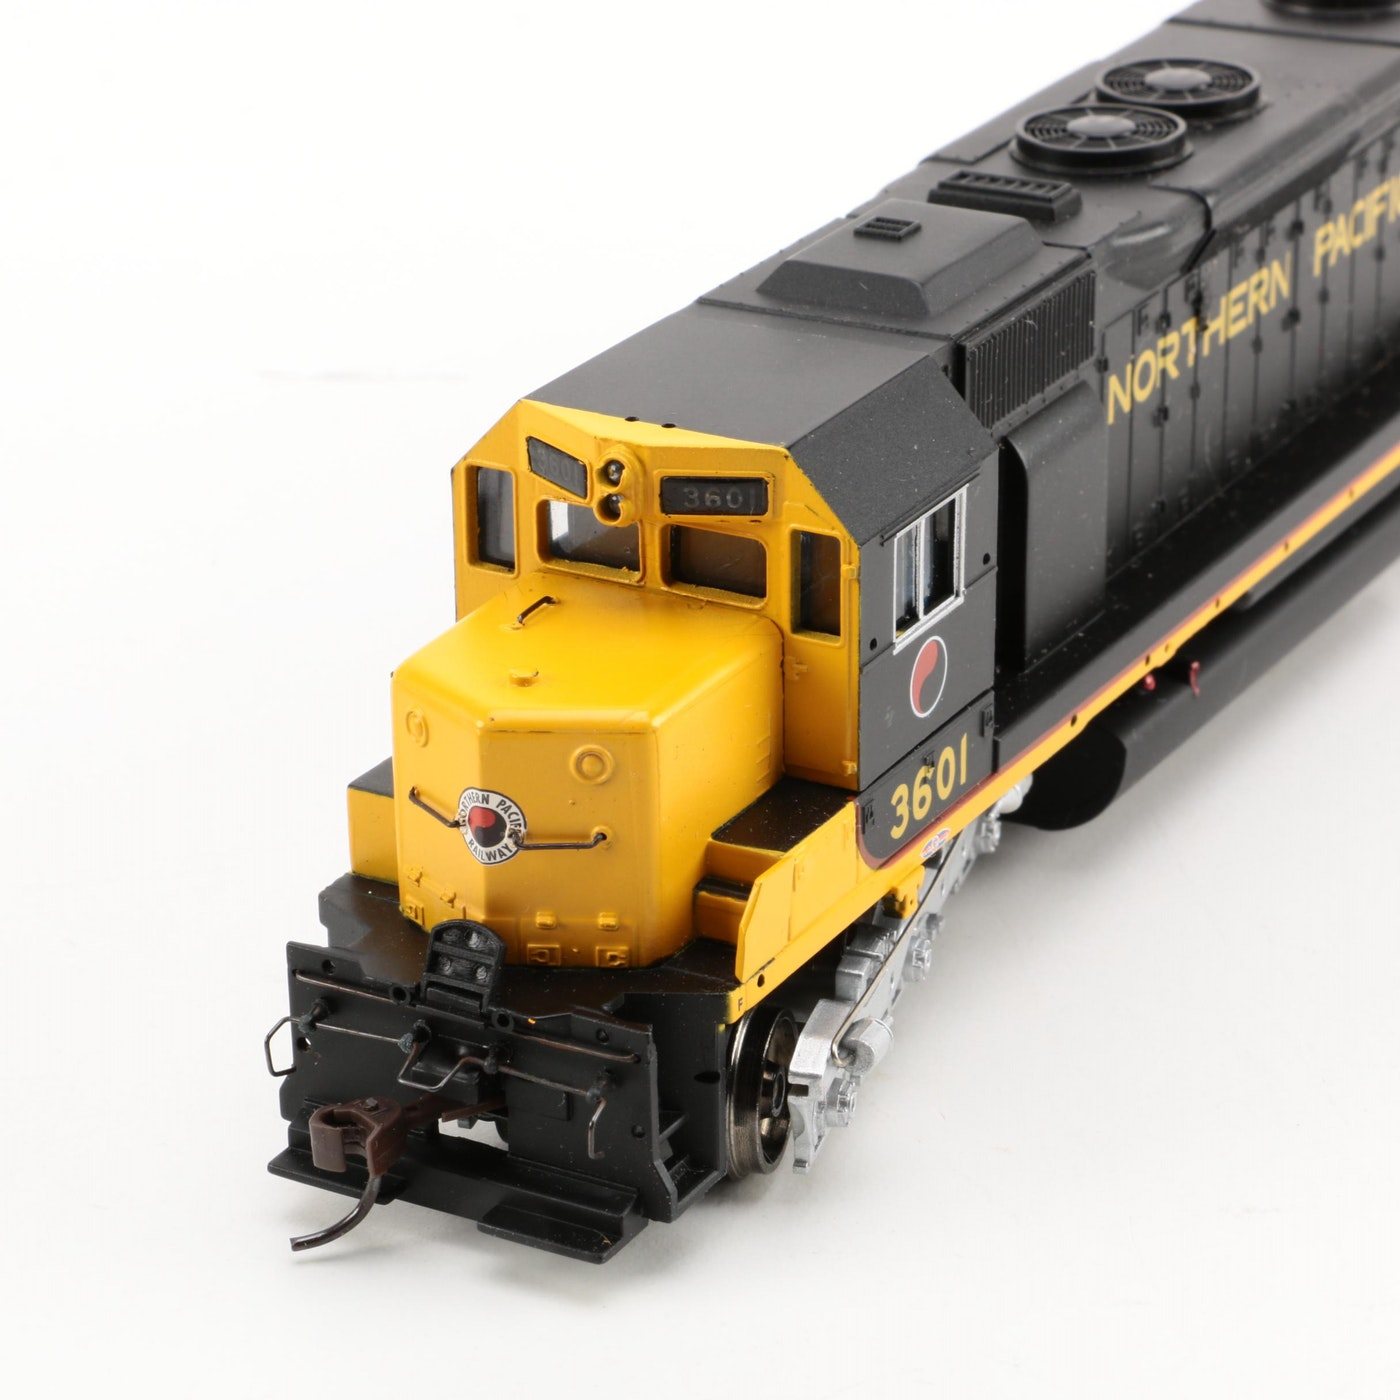 spectrum bachmann ho scale northern pacific diesel engine ebth. Black Bedroom Furniture Sets. Home Design Ideas